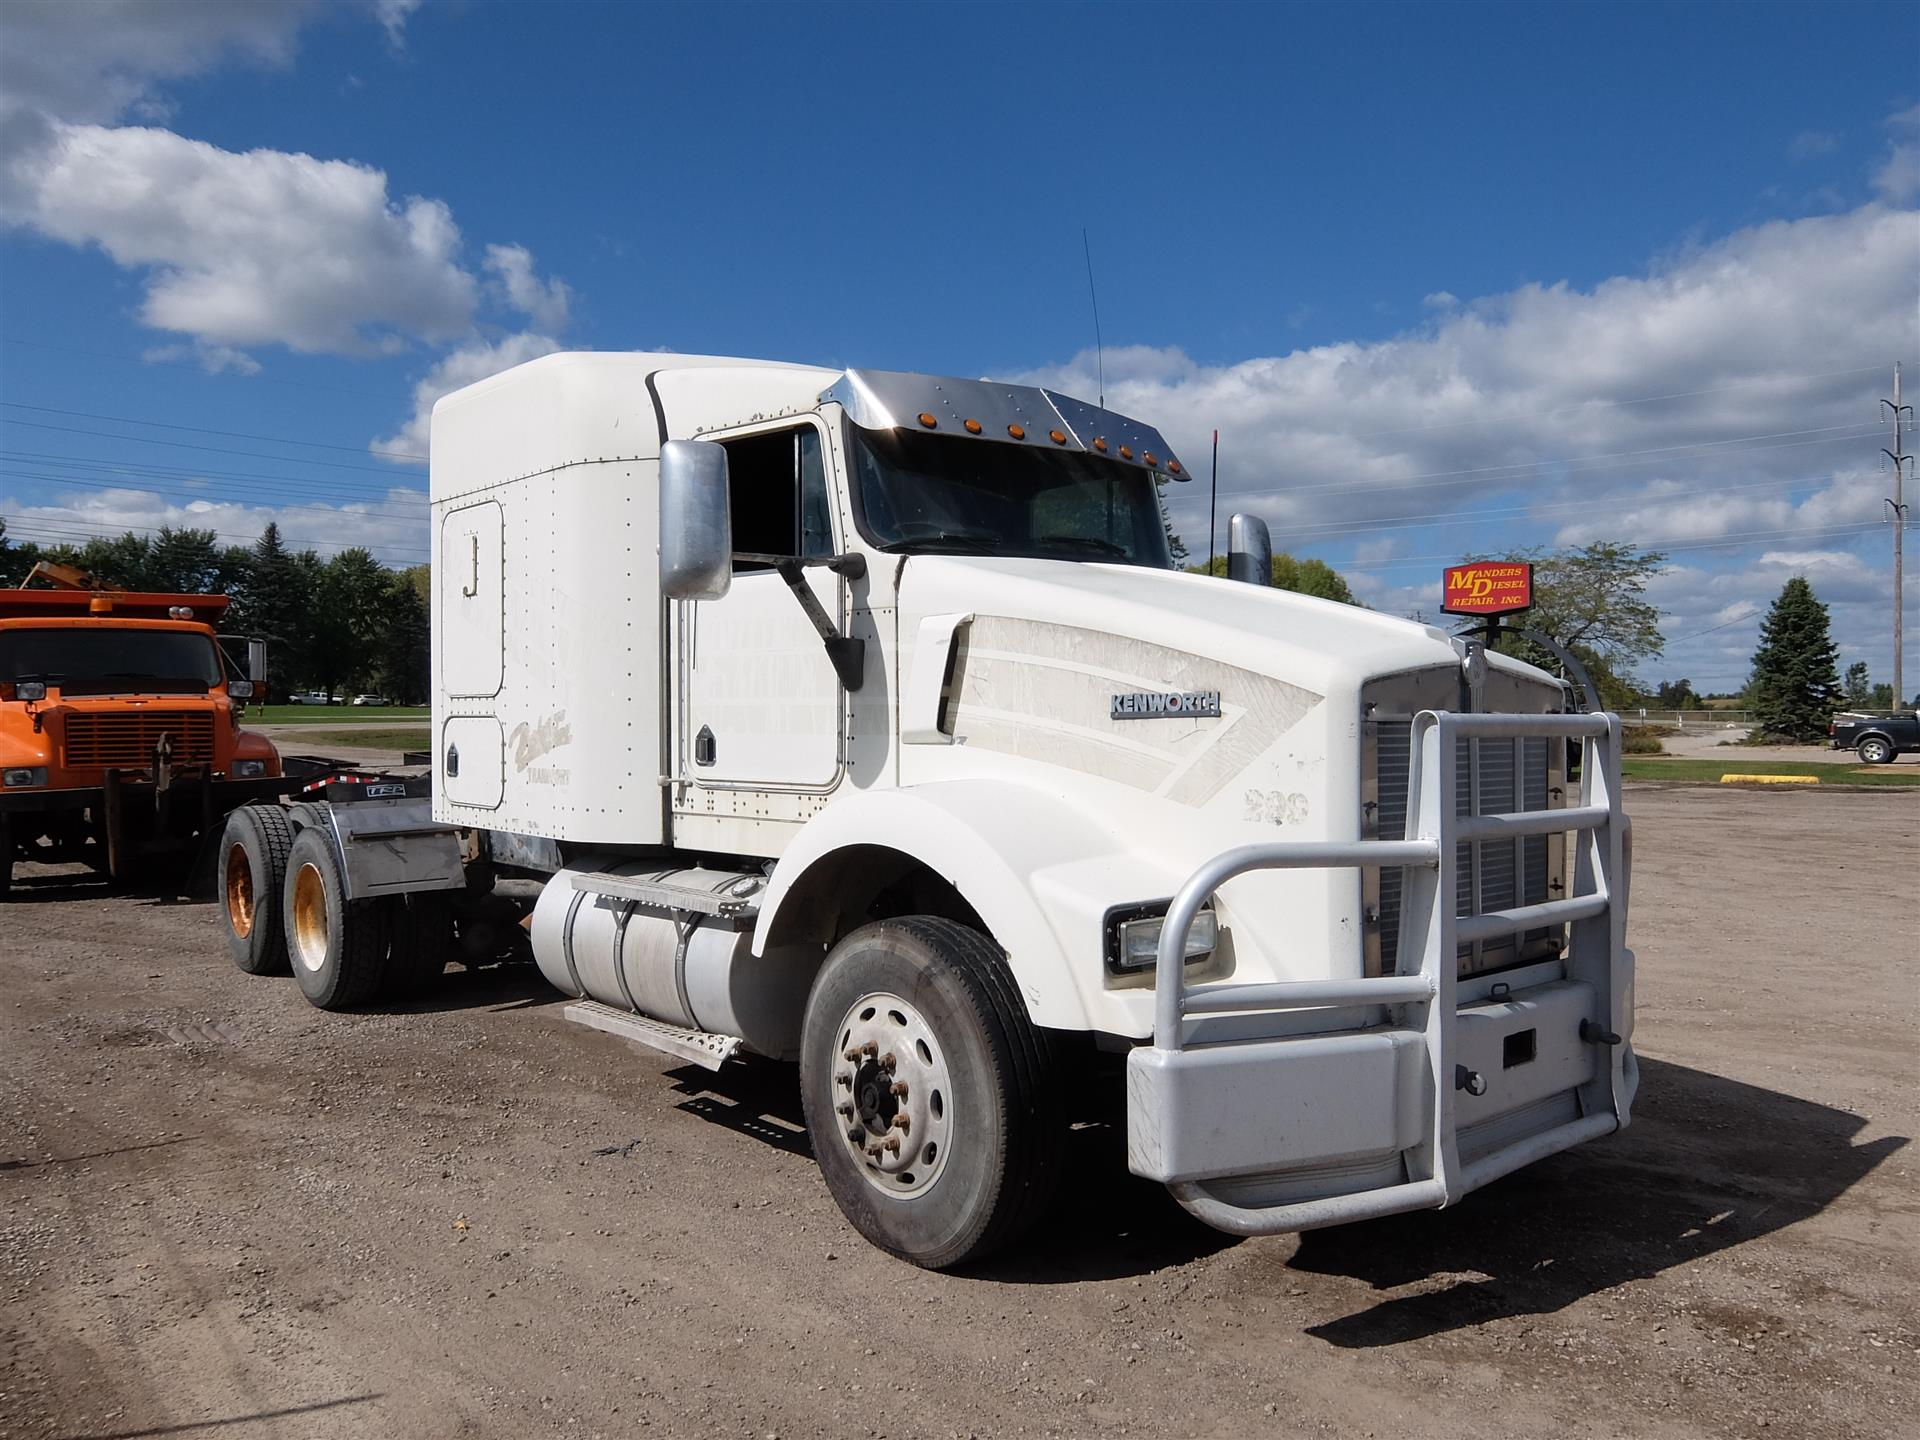 1996 Kenworth t800b for sale-59067841